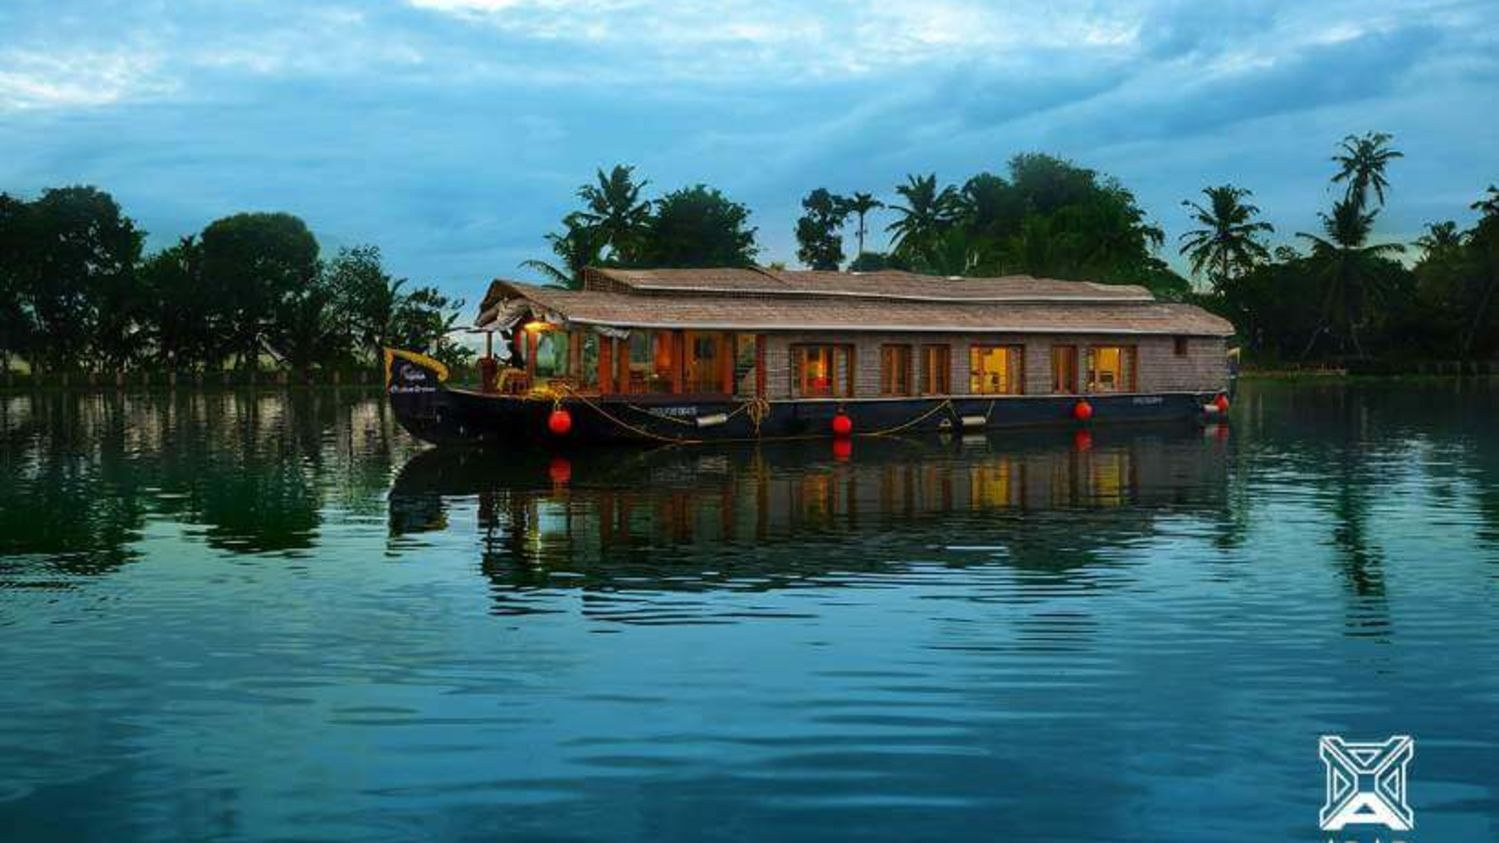 1, Houseboats in Alleppey, luxury houseboats in Alleppey, premium houseboats in Alleppey, backwater cruise in Kerala, luxury houseboats in Kumarakom, houseboat cruise in Kumarakom, best houseboats in Kerala